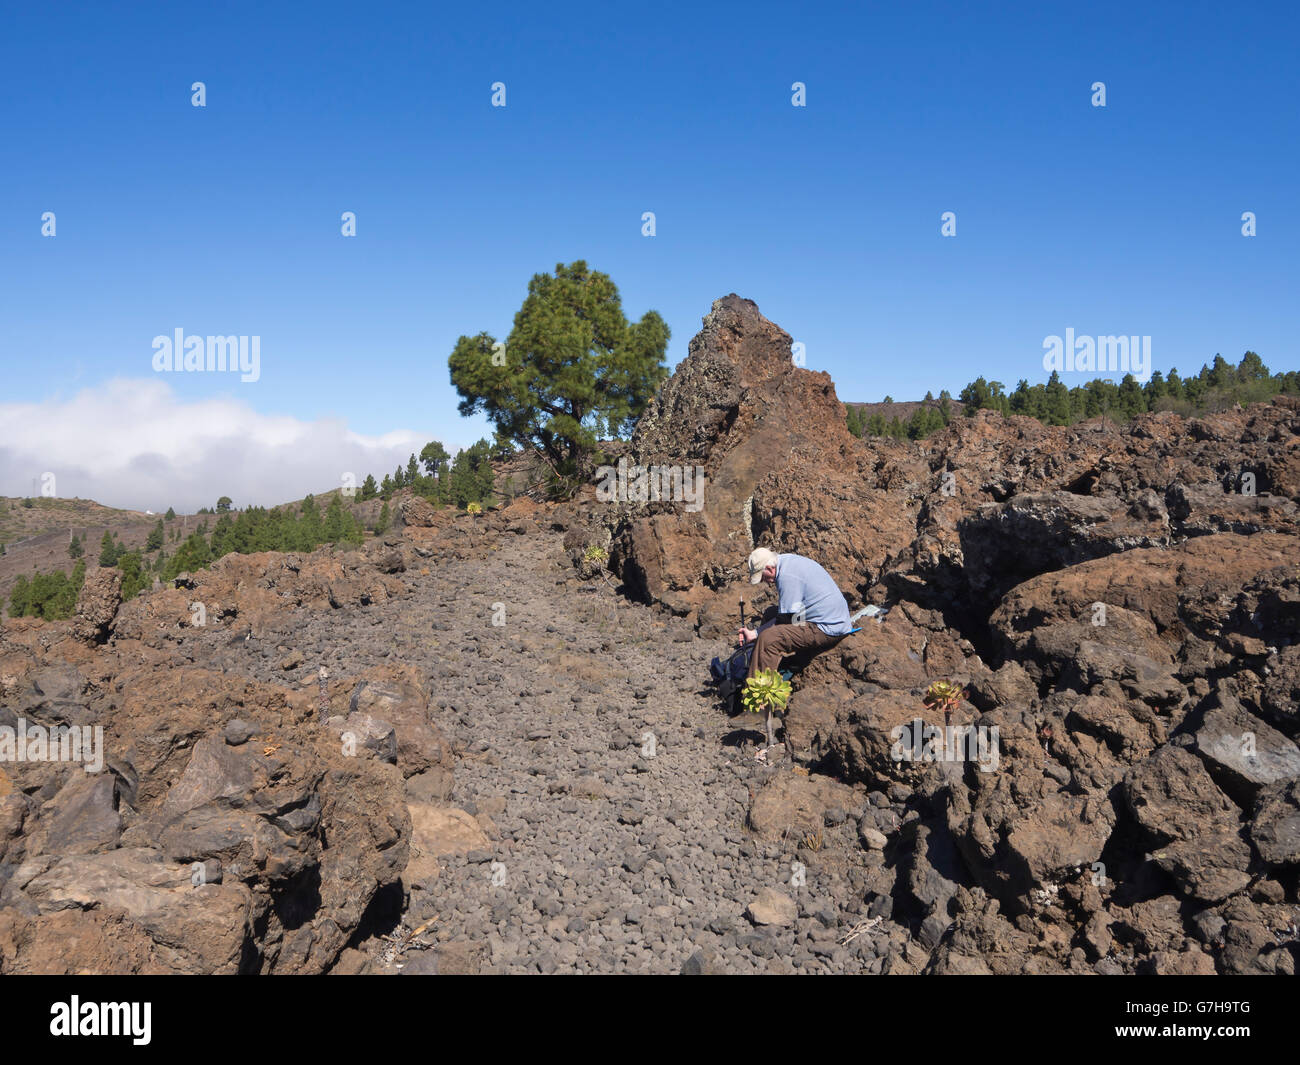 Canary Islands,footpath in an area of solidified black lava rocks,  tired hiker pausing  near Arguayo Tenerife Spain - Stock Image